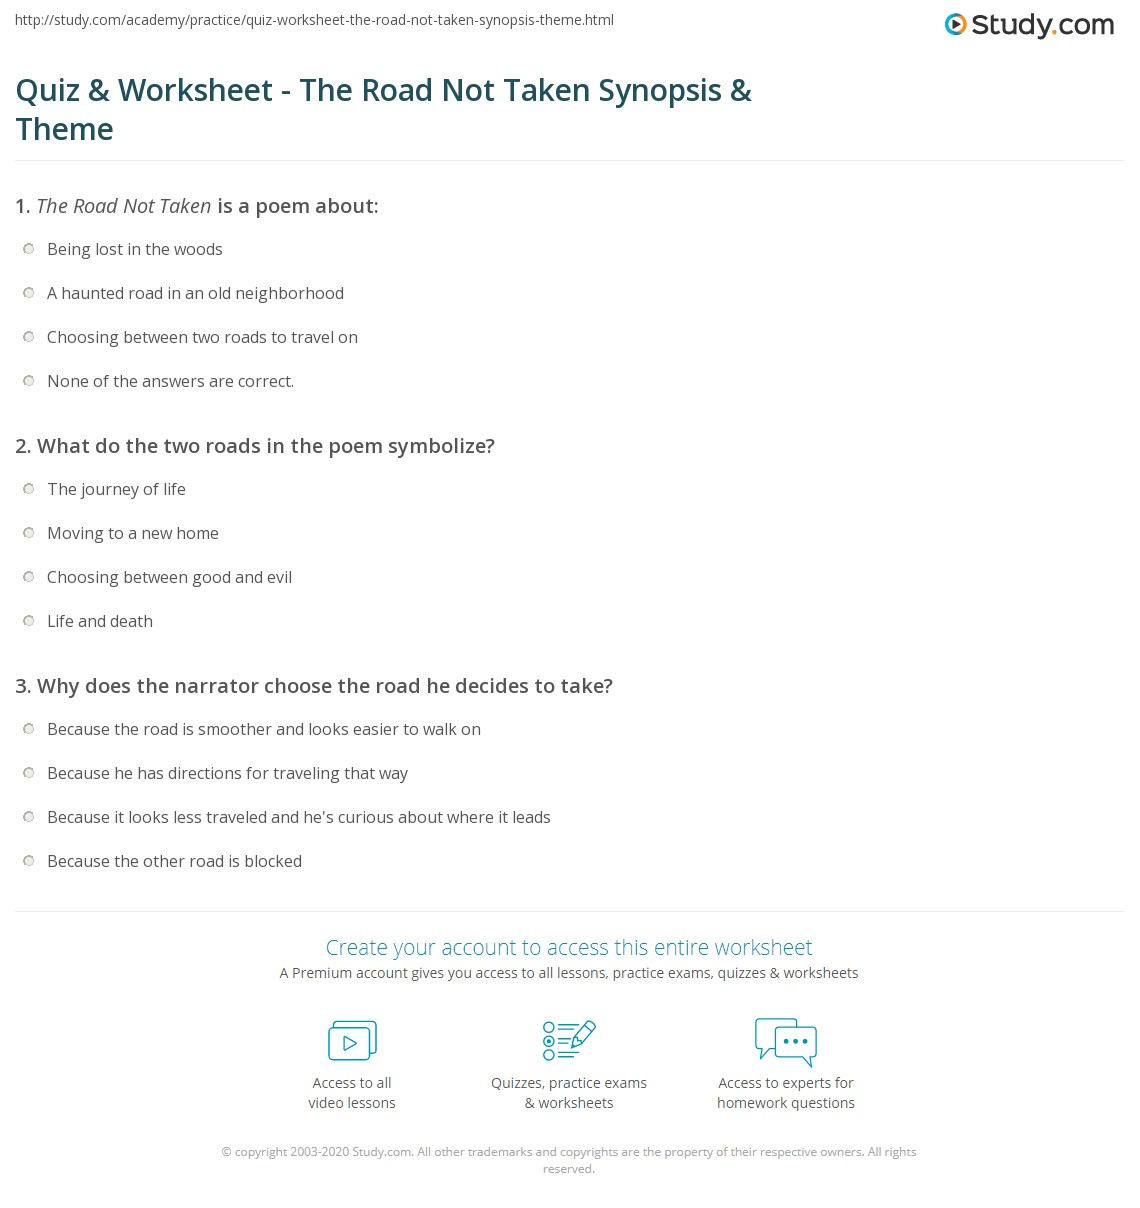 Quiz worksheet the road not taken synopsis theme study what do the two roads in the poem symbolize buycottarizona Choice Image